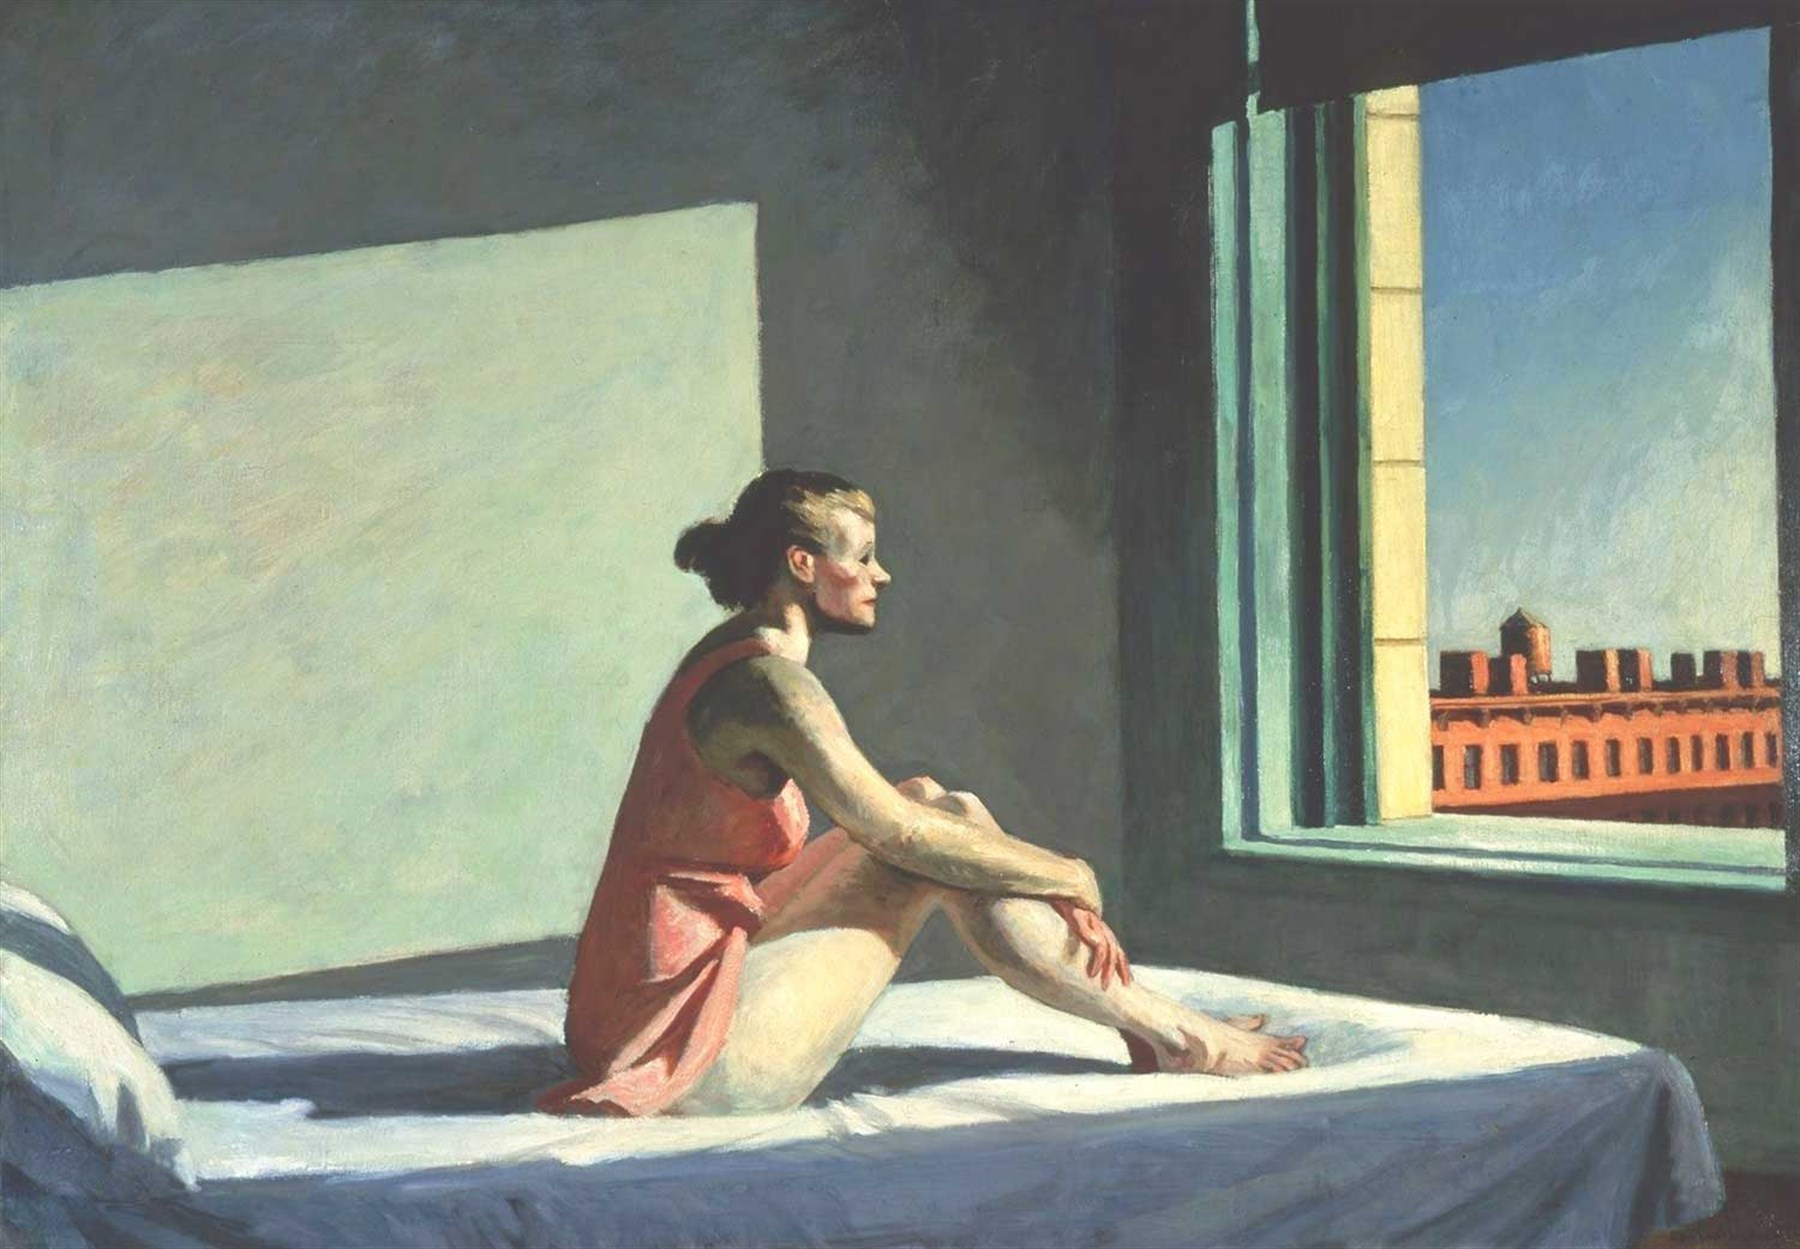 edward-hopper-morning-sun-art-print-2915